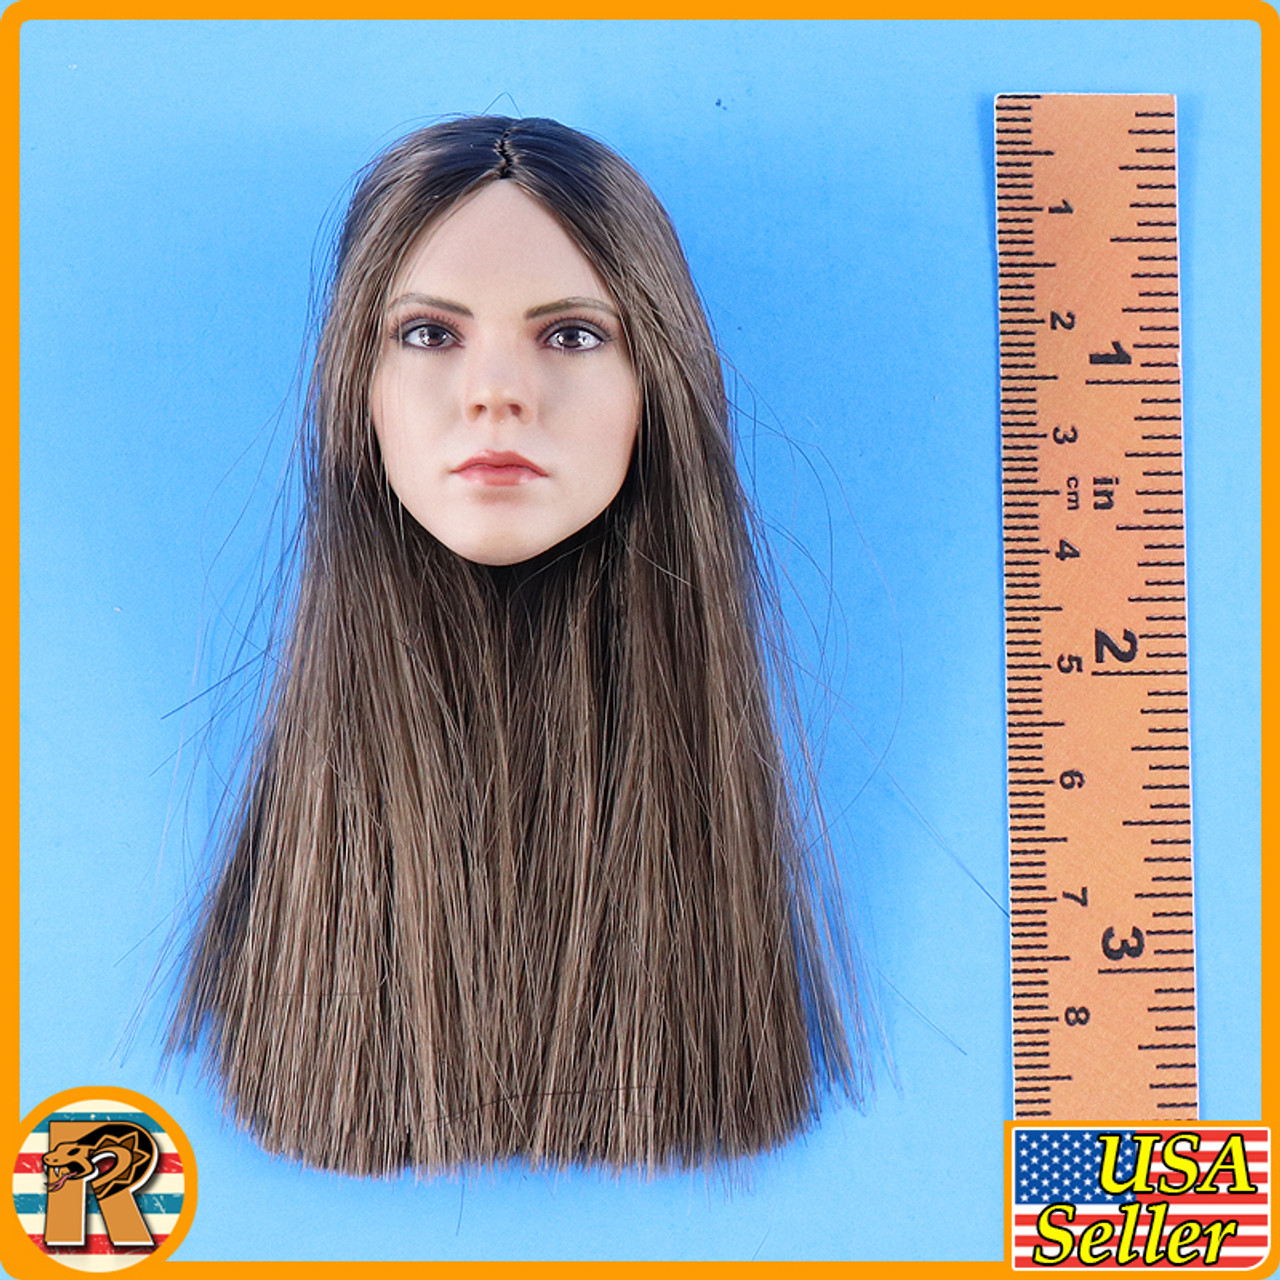 Western Beauty - Head w/ Brown Rooted Hair #2 - 1/6 Scale -